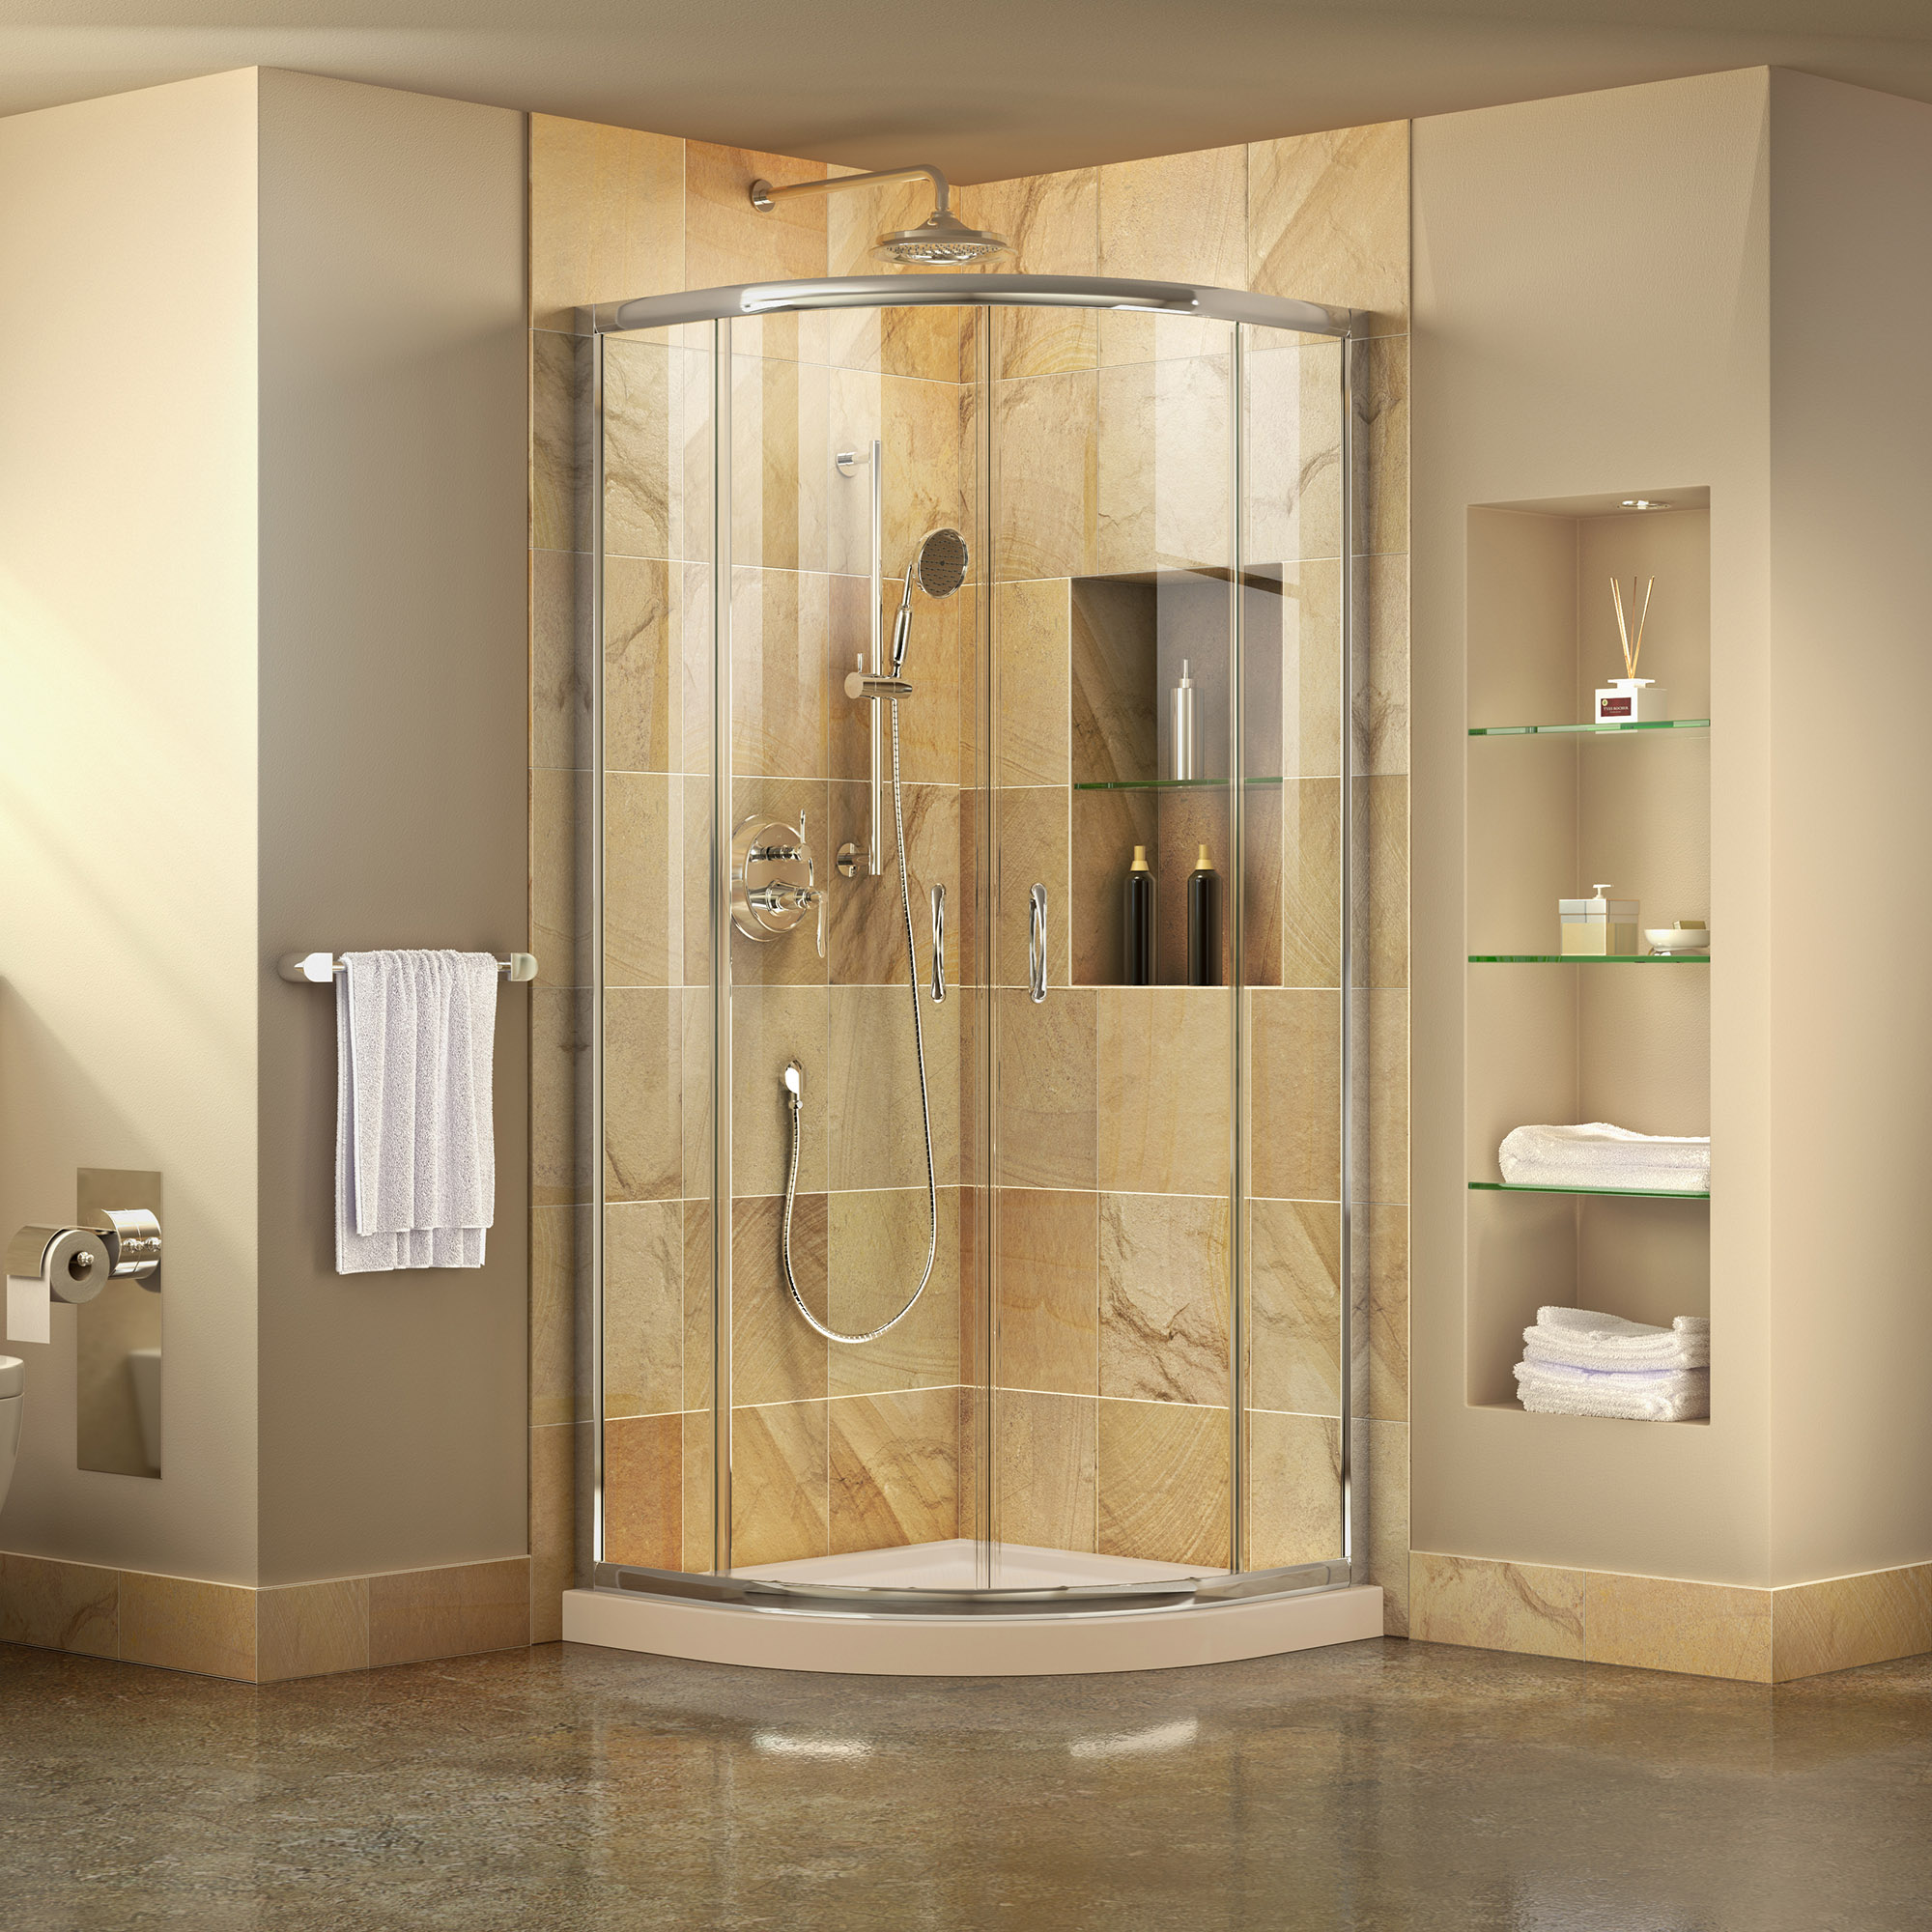 "Prime Frameless Sliding Shower Enclosure & SlimLine 33"" by 33"" Quarter Round Shower Base"